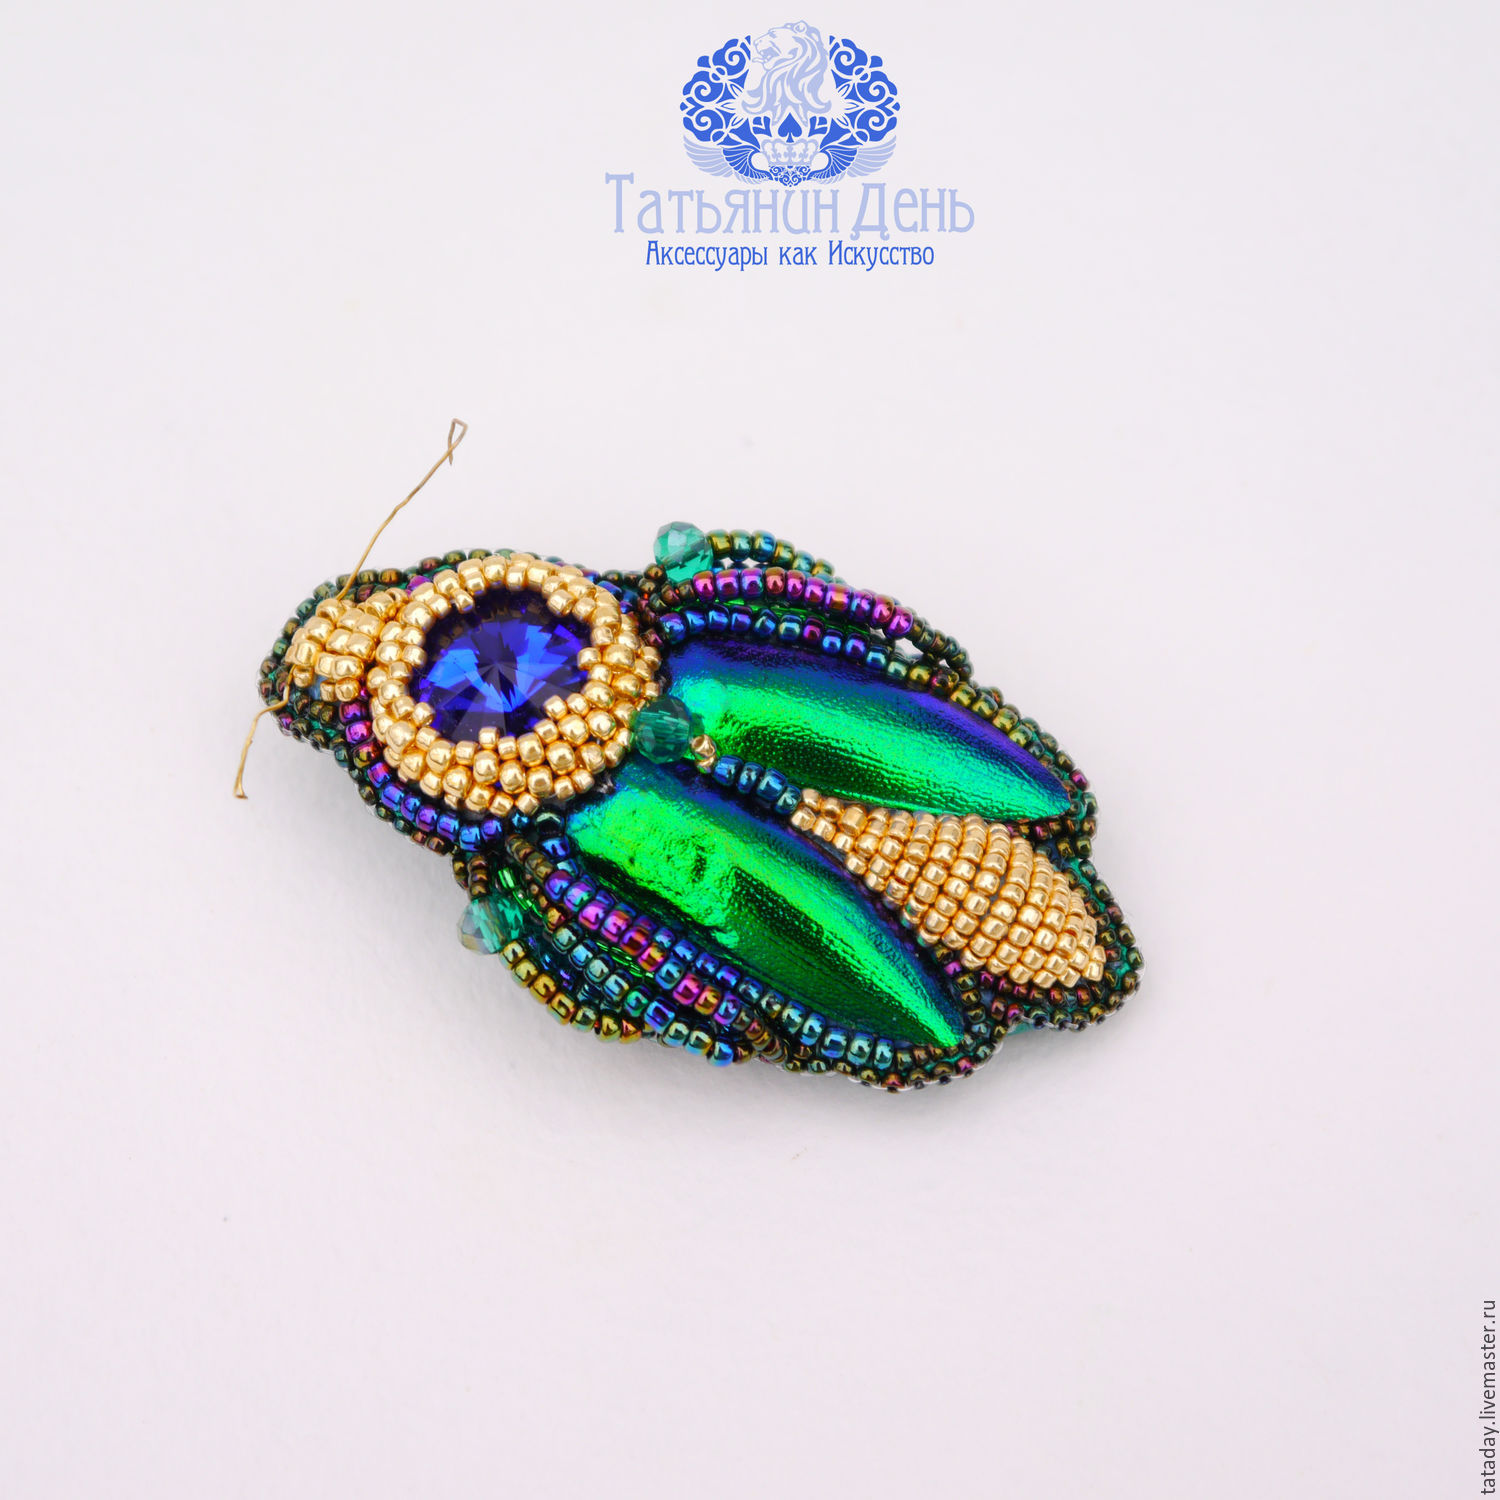 blue buyjohn johnlewis main jewel rsp com online pdp flower john green at lewis brooch